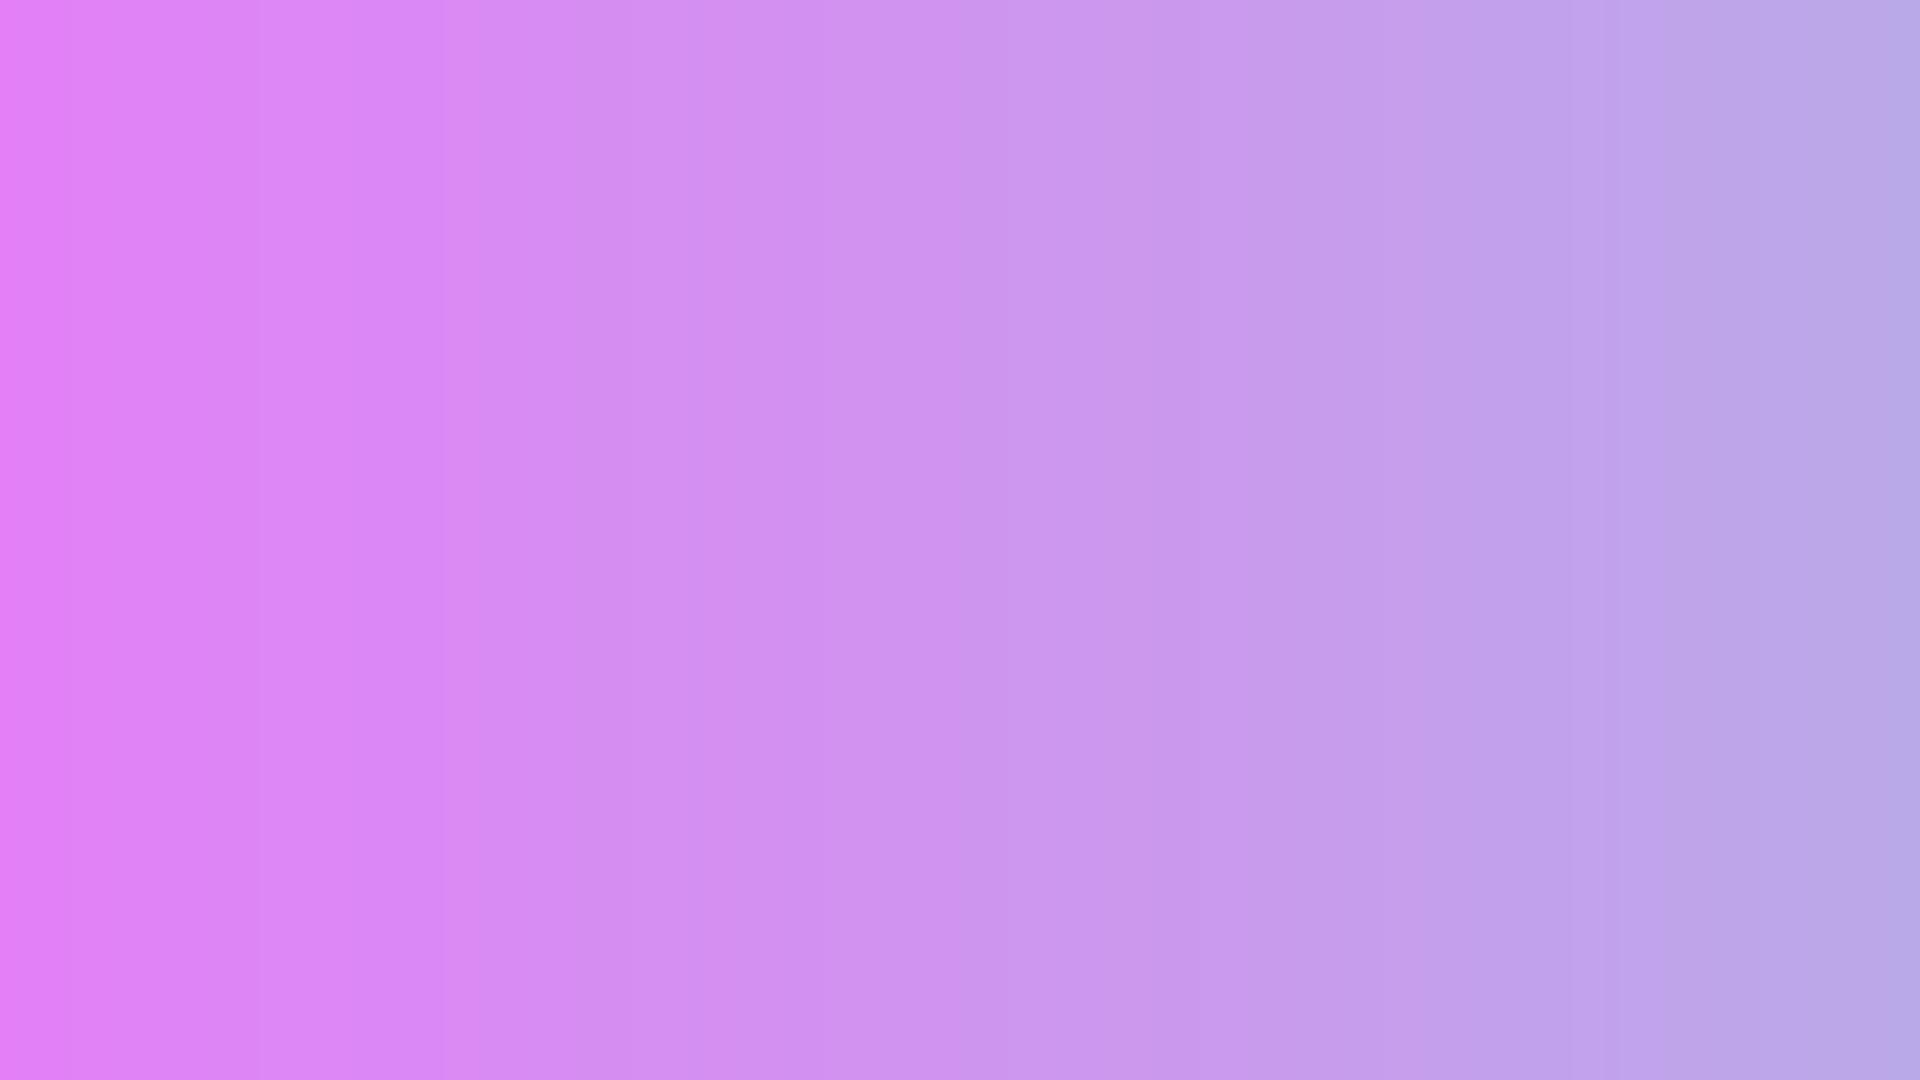 pURPL Gradient